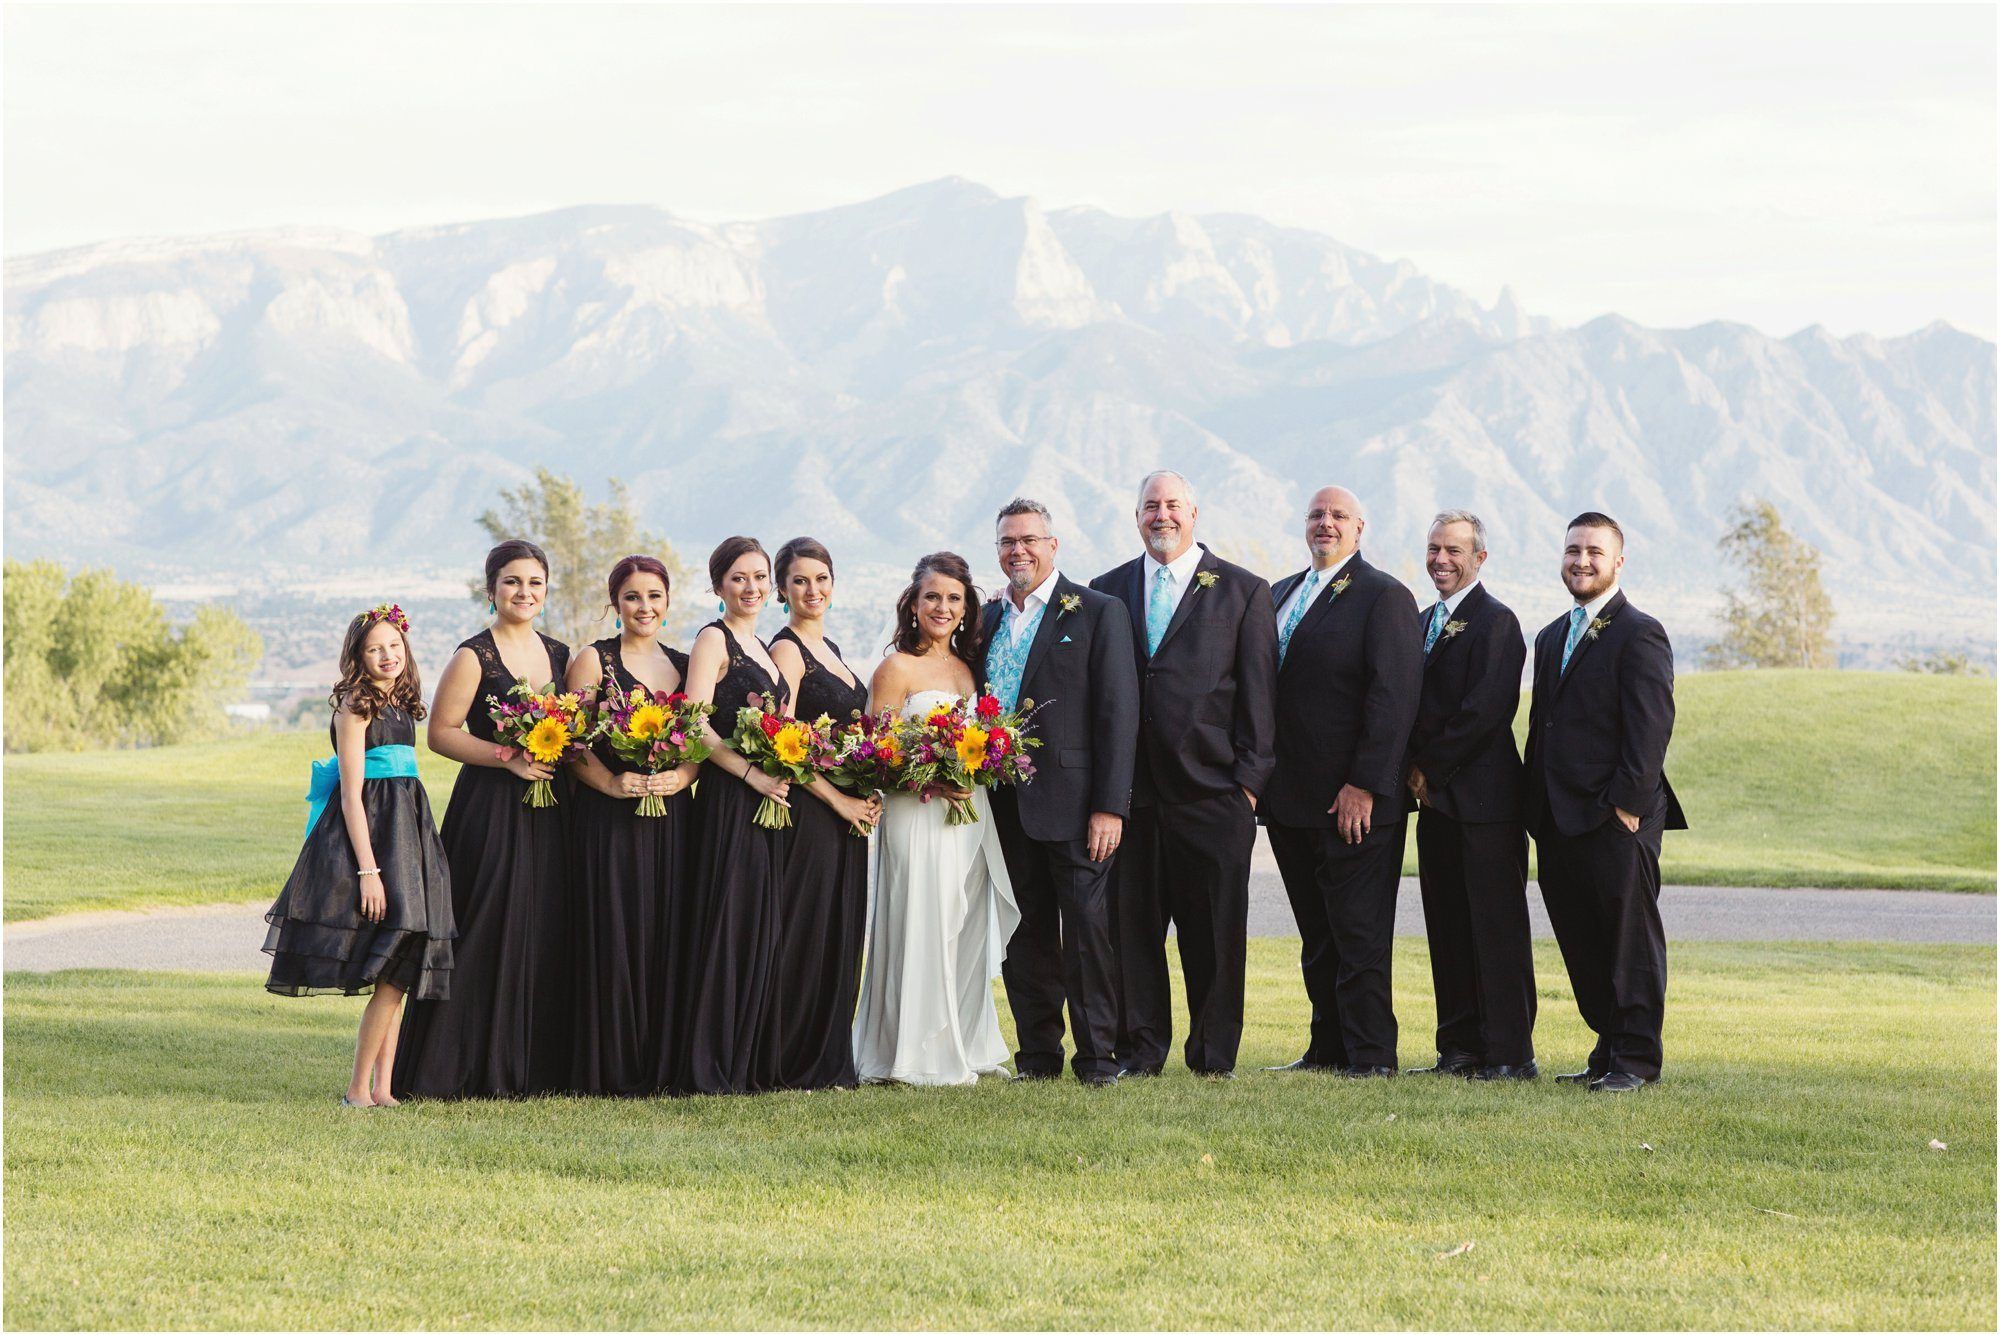 055BlueRosePhotography_ Albuquerque wedding photographers